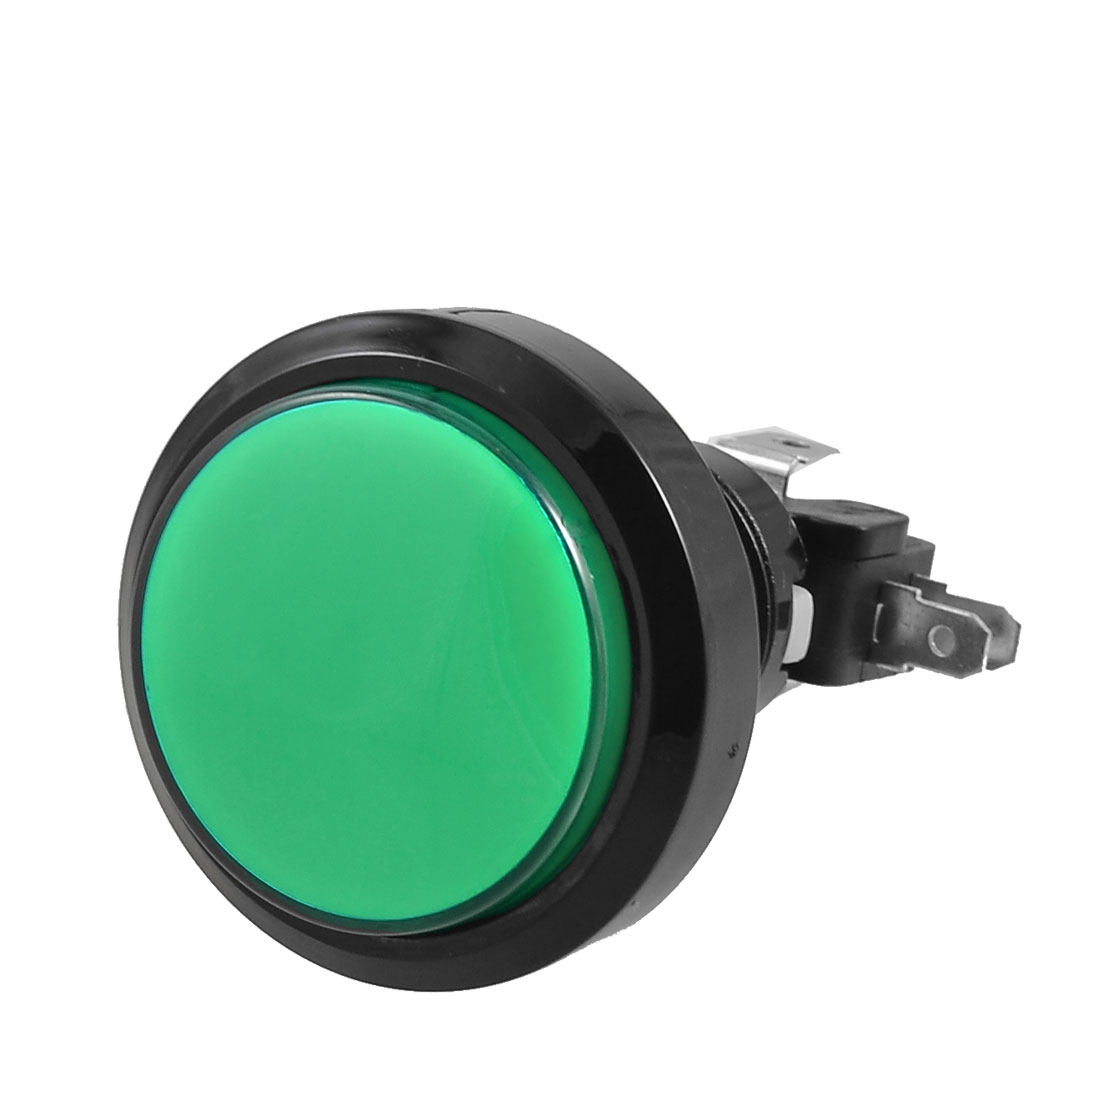 Arcade Game 36mm Green Illuminated Momentary Push Button SPDT Micro Switch